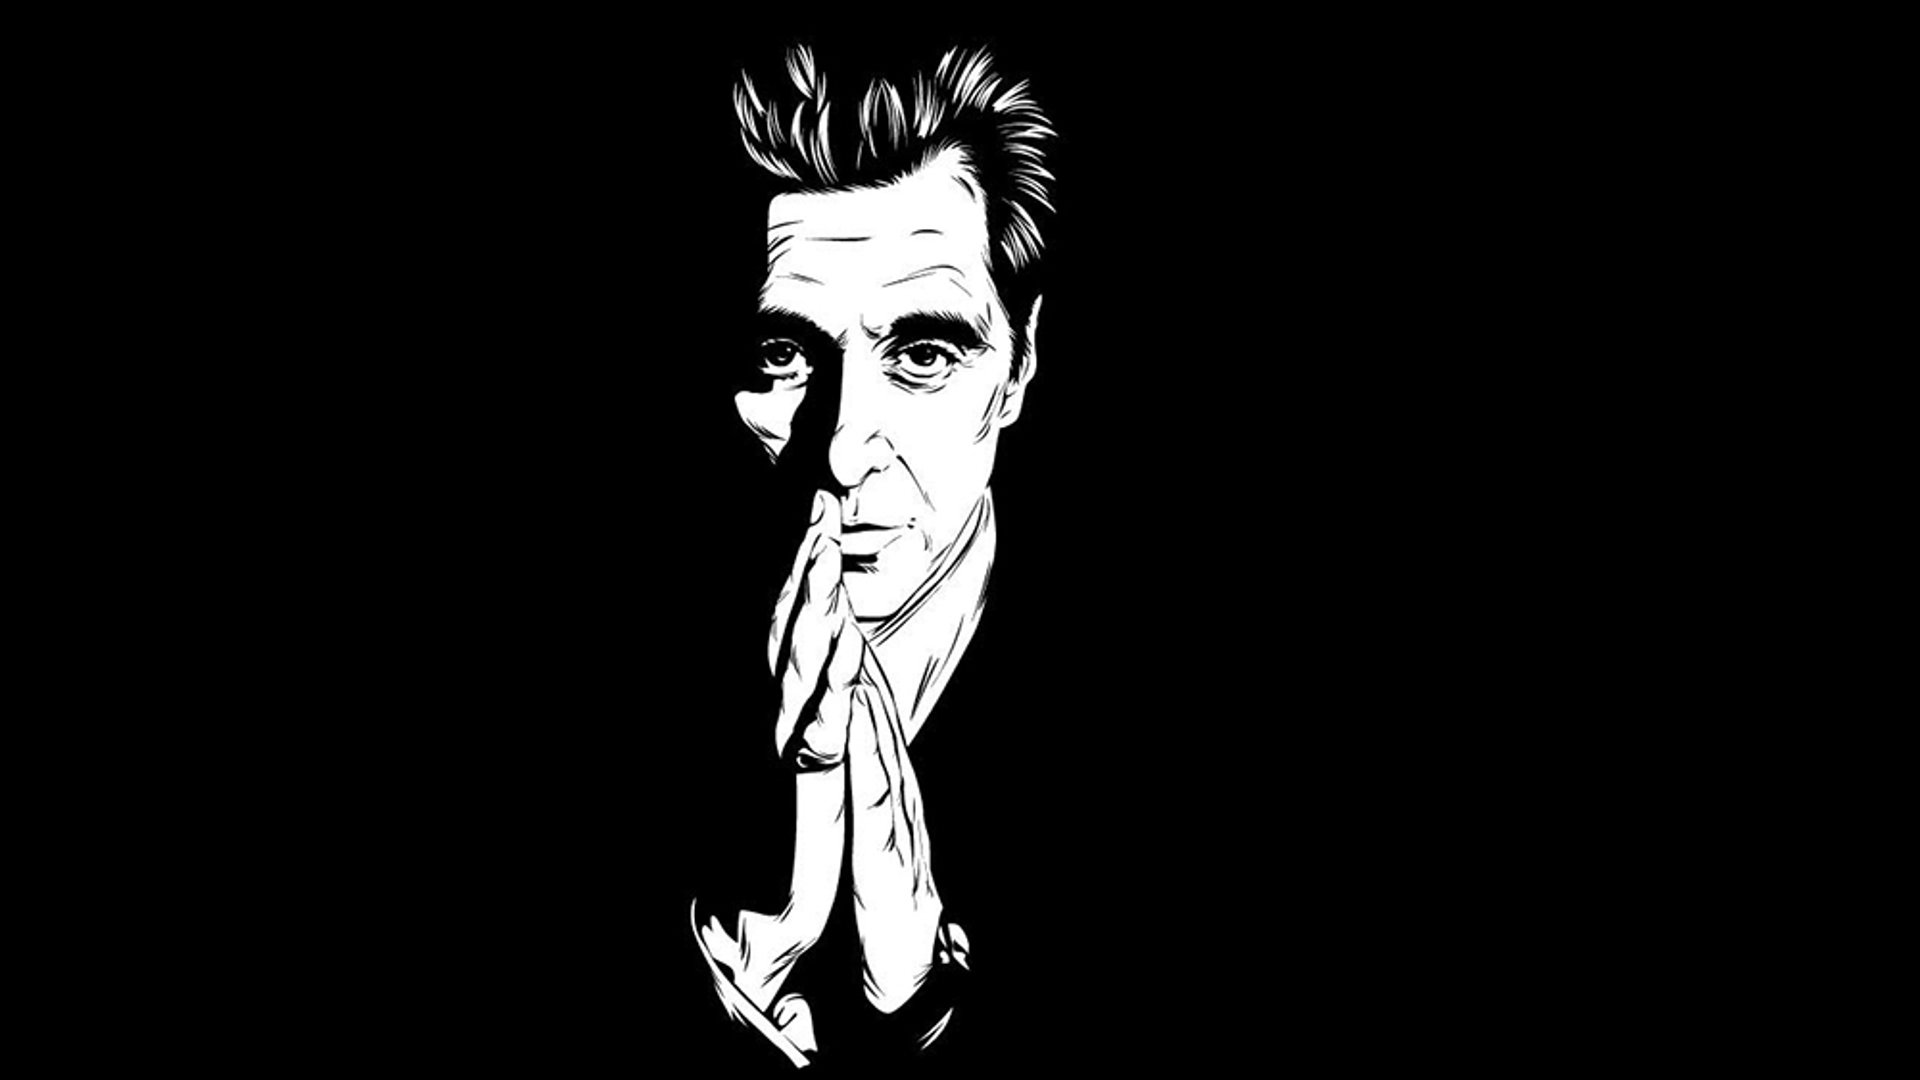 1 The Godfather Part Iii Hd Wallpapers Background Images